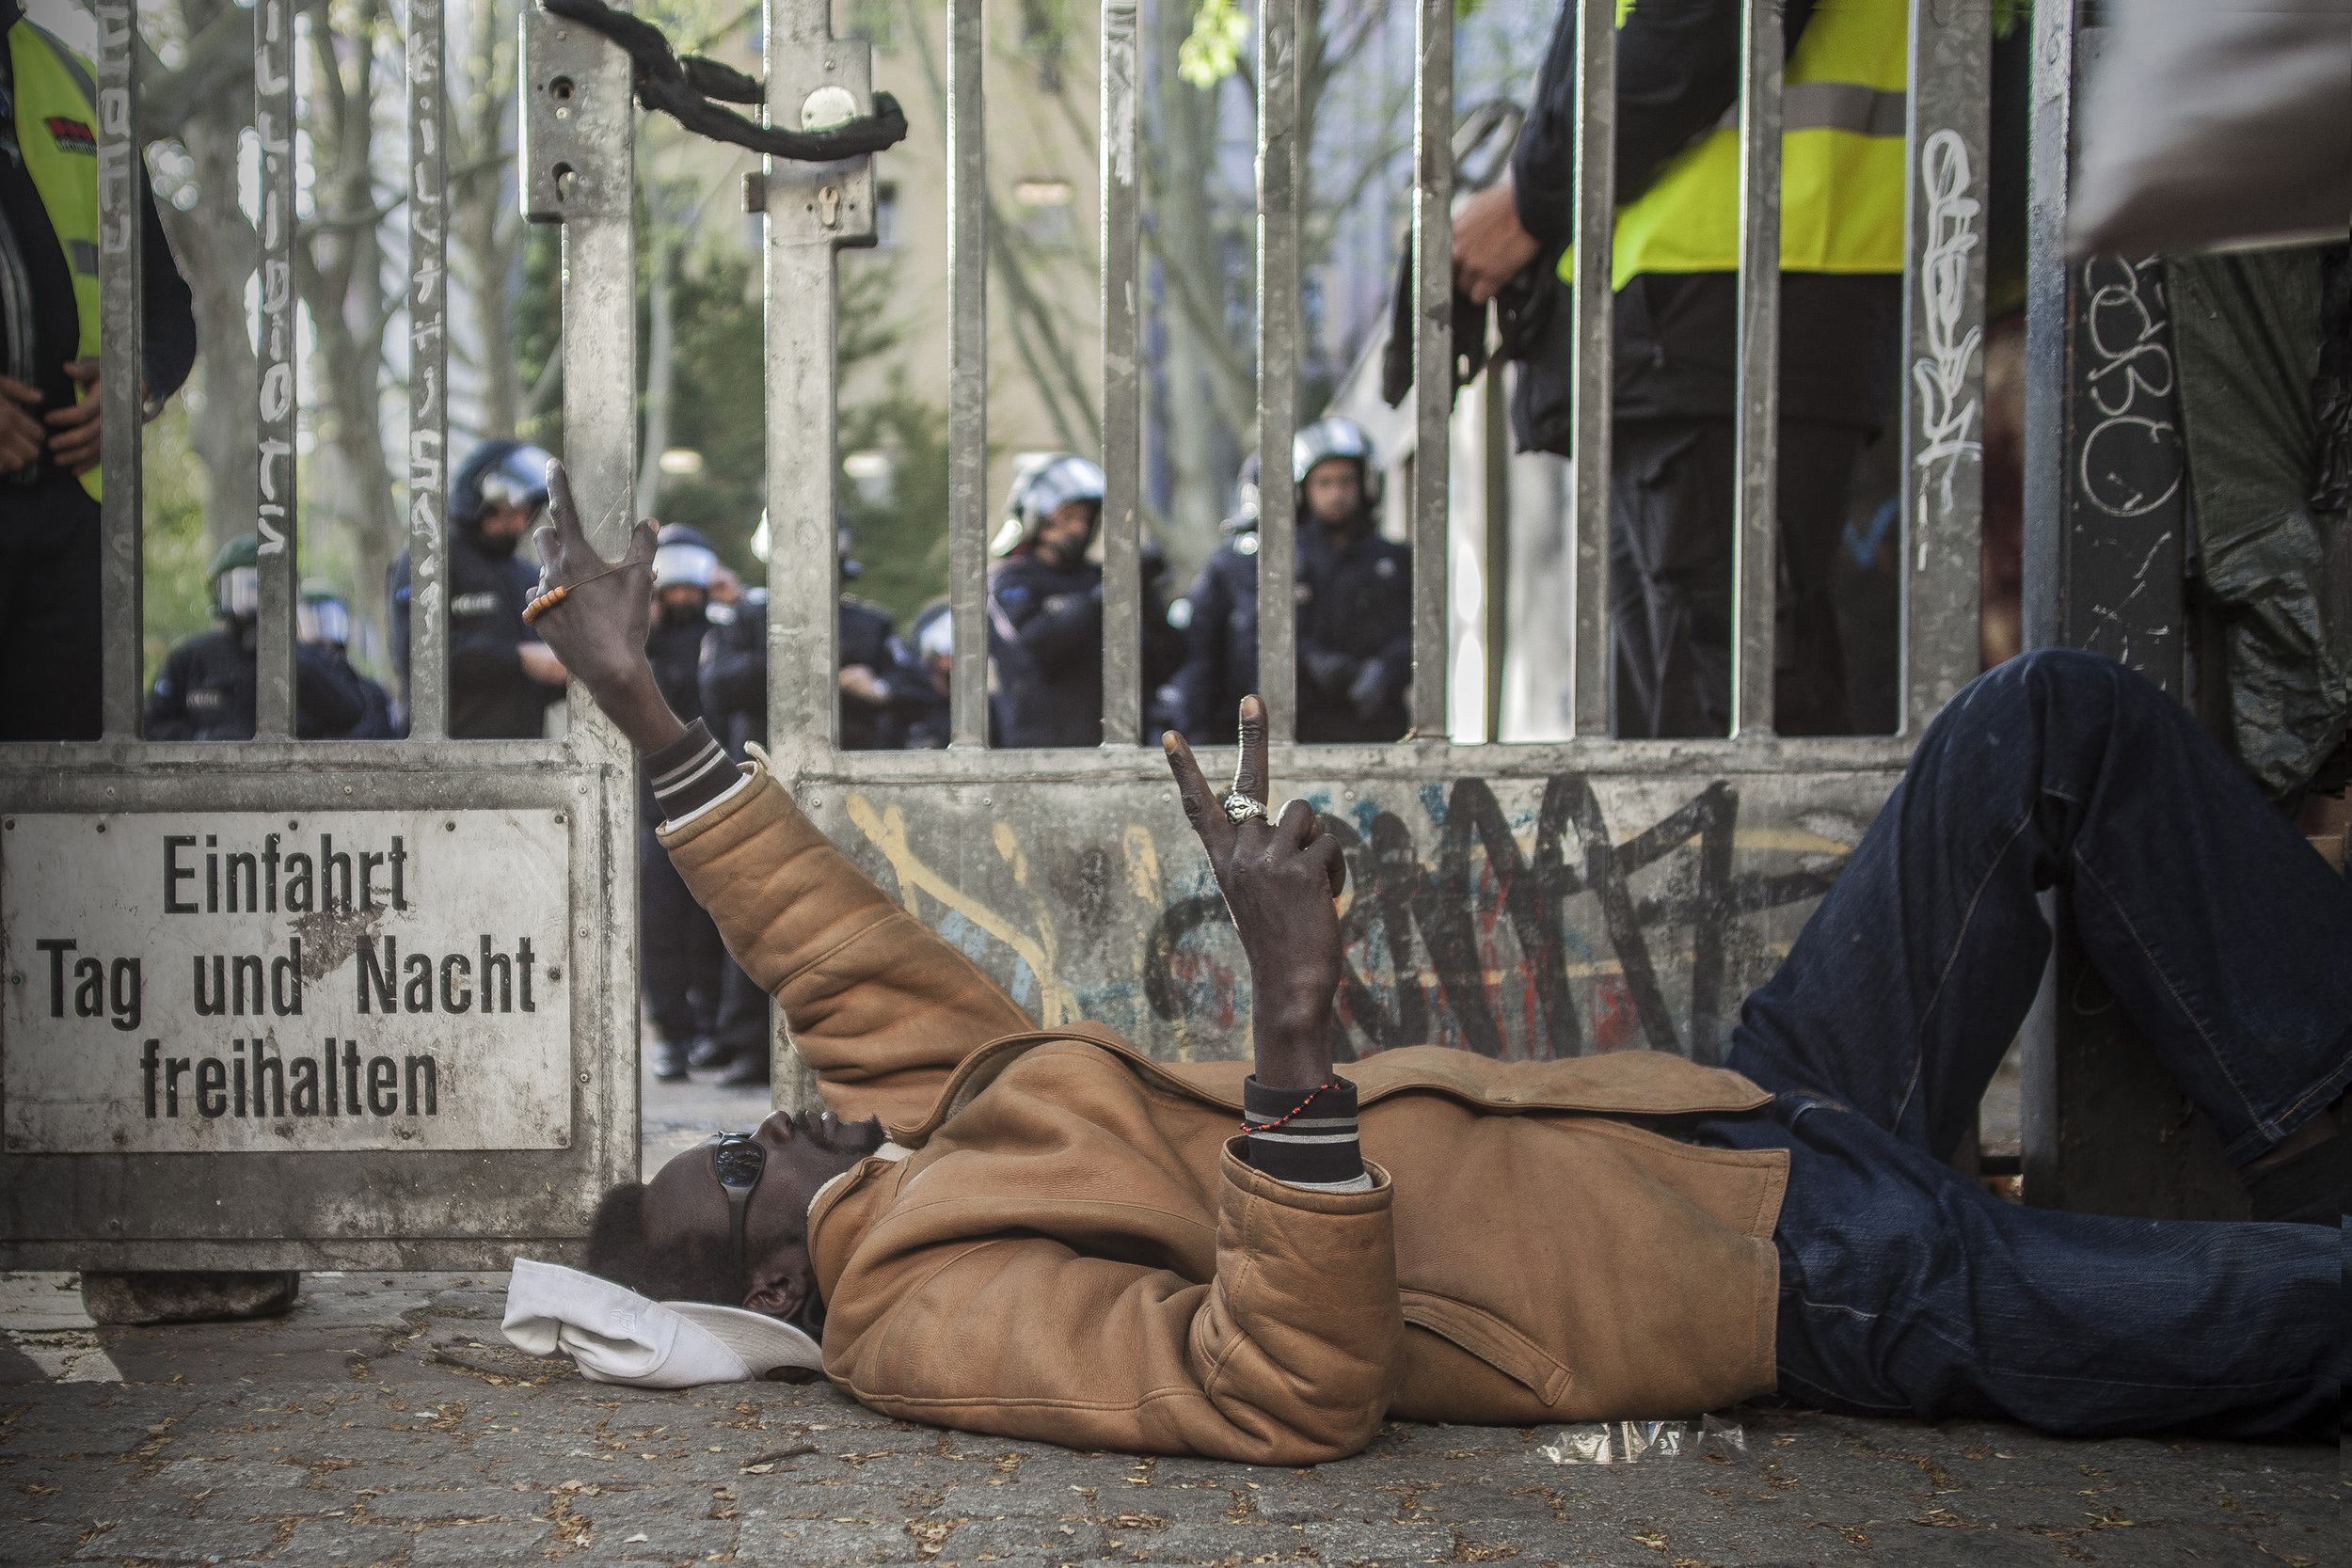 1 May, 2015 - Berlin, Germany   Protester by the gates of the Gerhart-Hauptmann Schule. The abandoned building was formerly occupied by African asylum seekers until they were forcibly removed one month prior. In anticipation of the annual massive May 1st demonstrations in Berlin police accompanied by service dogs fortified the complex's entrance.